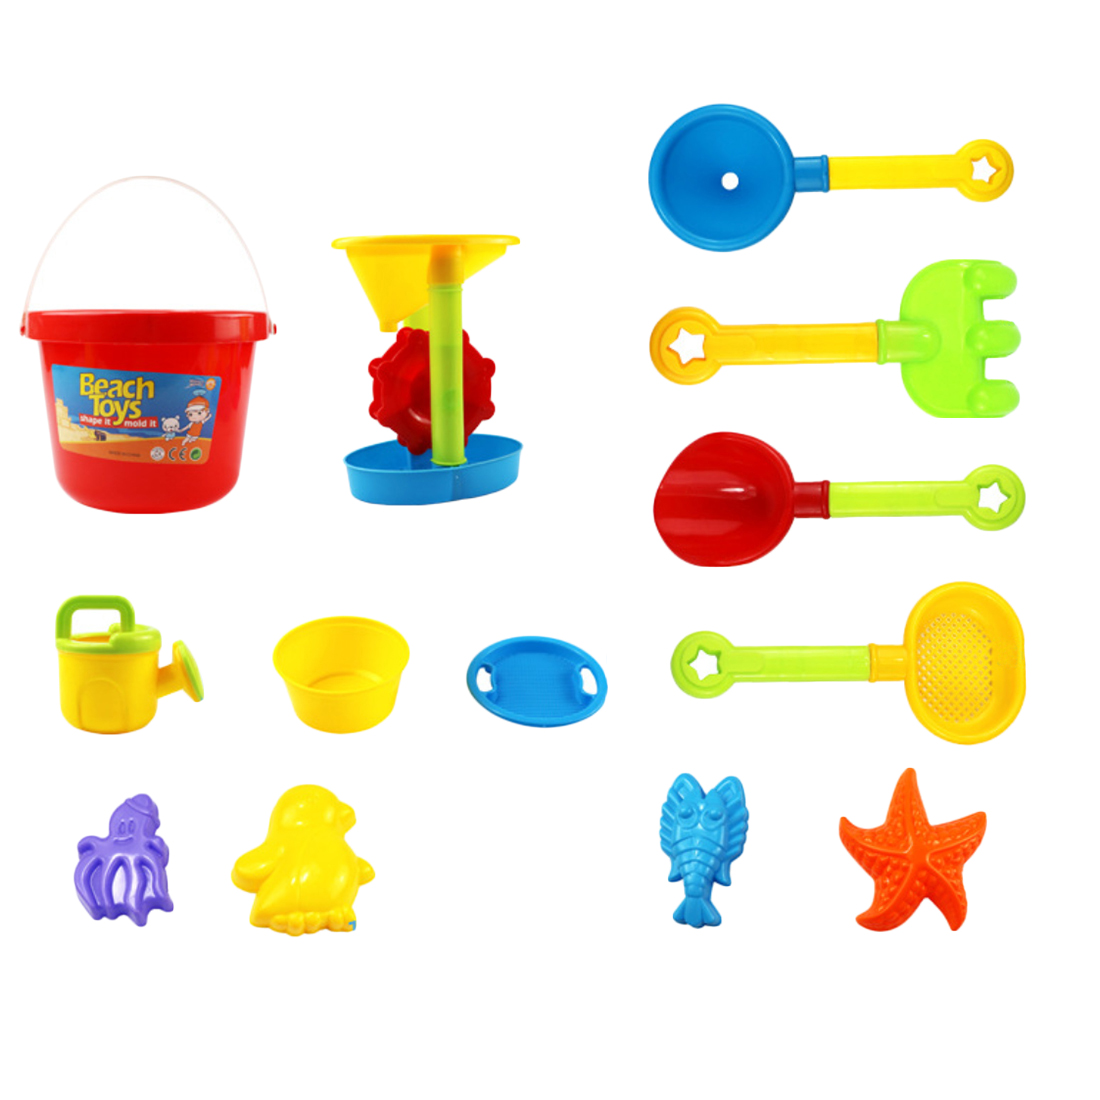 13 Pieces Beach Sand Toys Set with Mesh Bag for Kids Color Random by